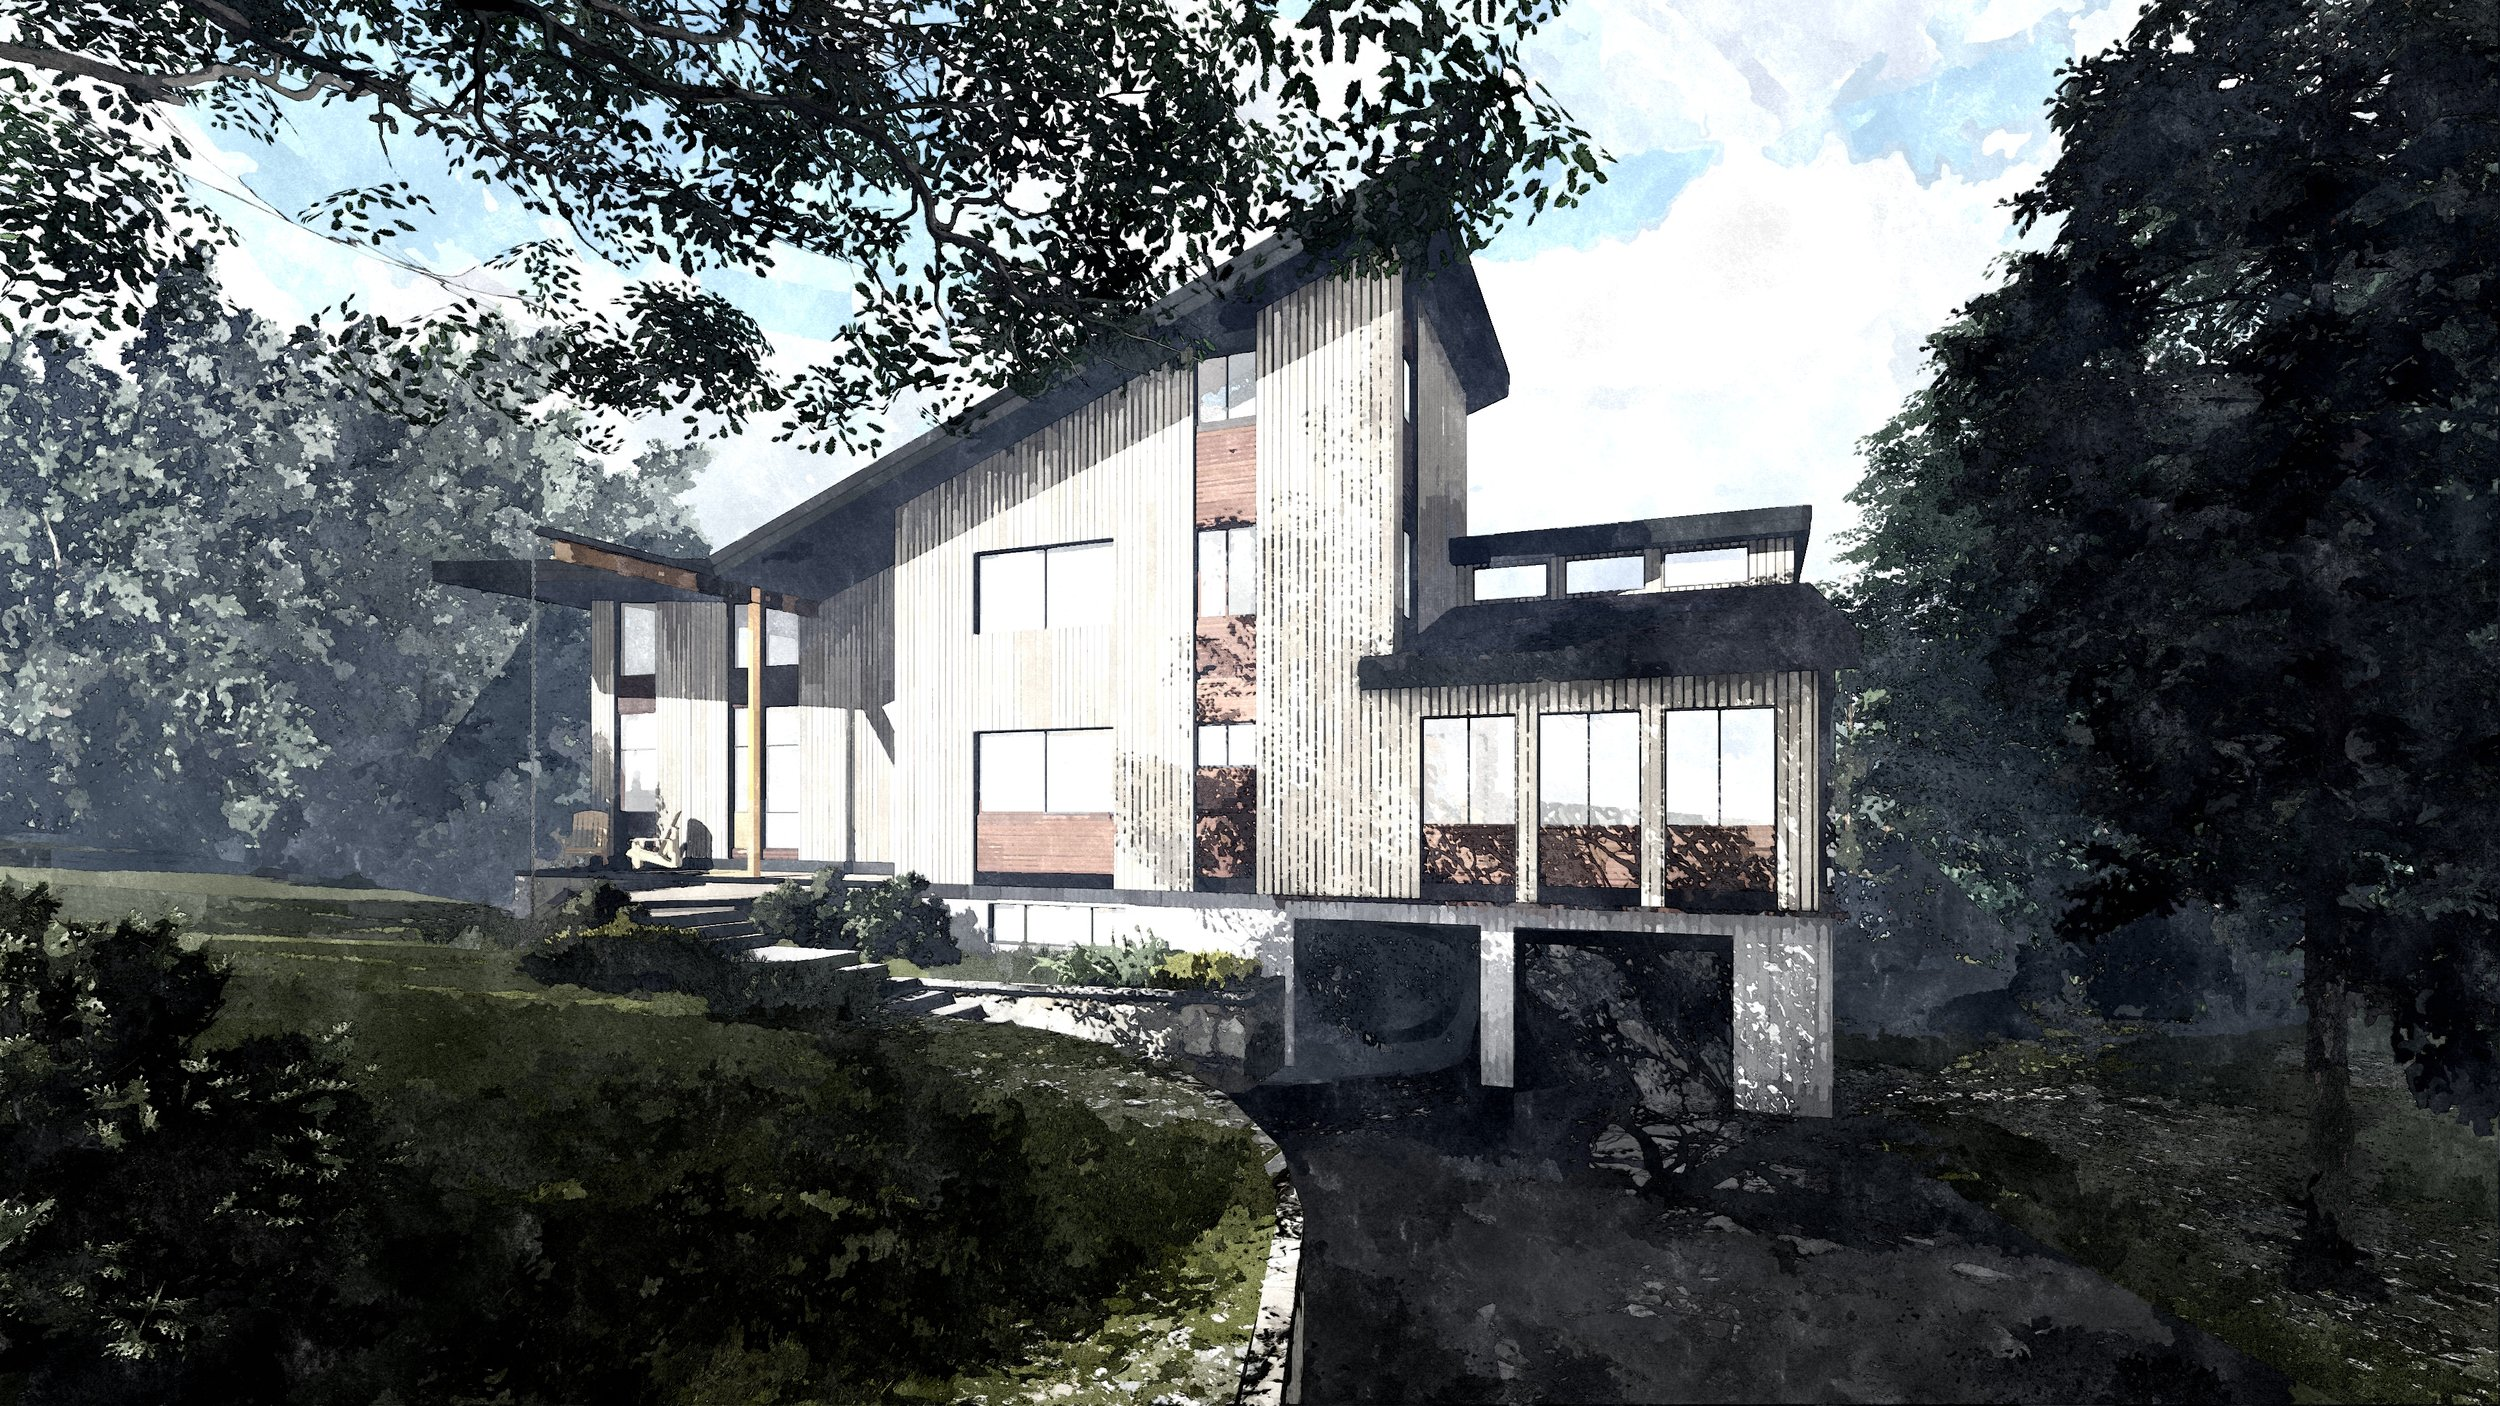 Exterior view of residence from entrance driveway...